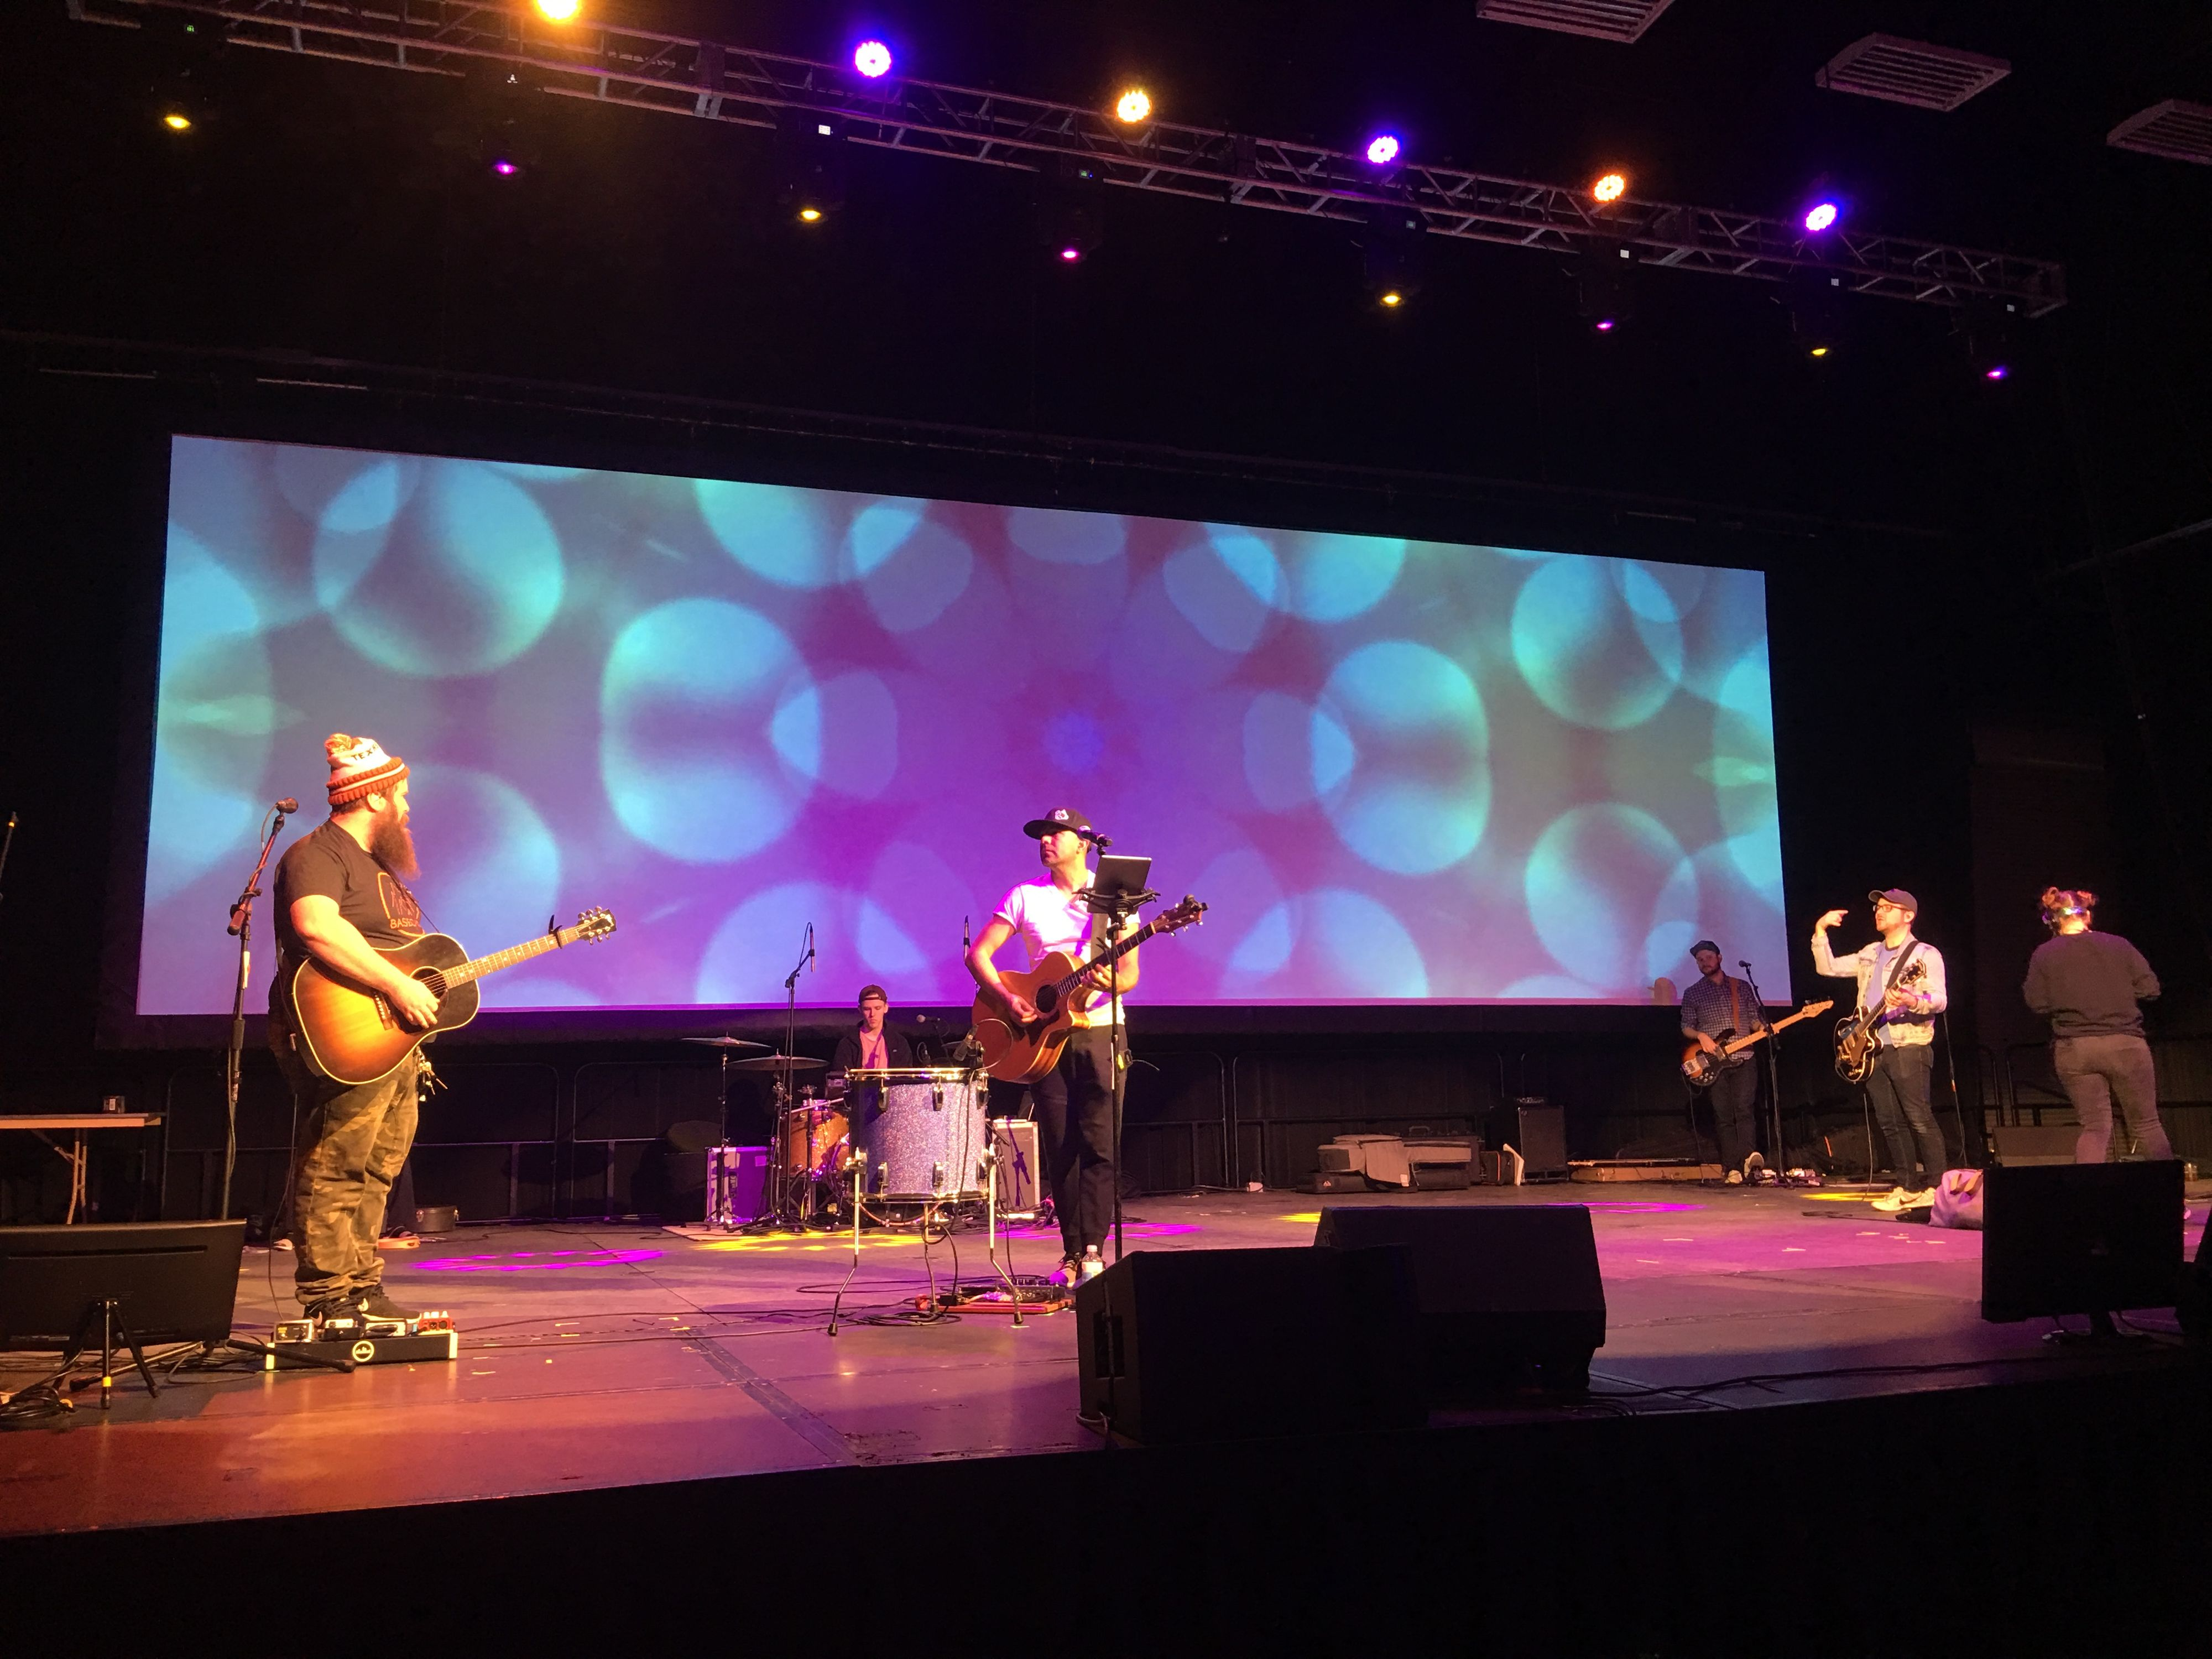 A band playing on stage in front of a large projection display at a St. Louis Conference